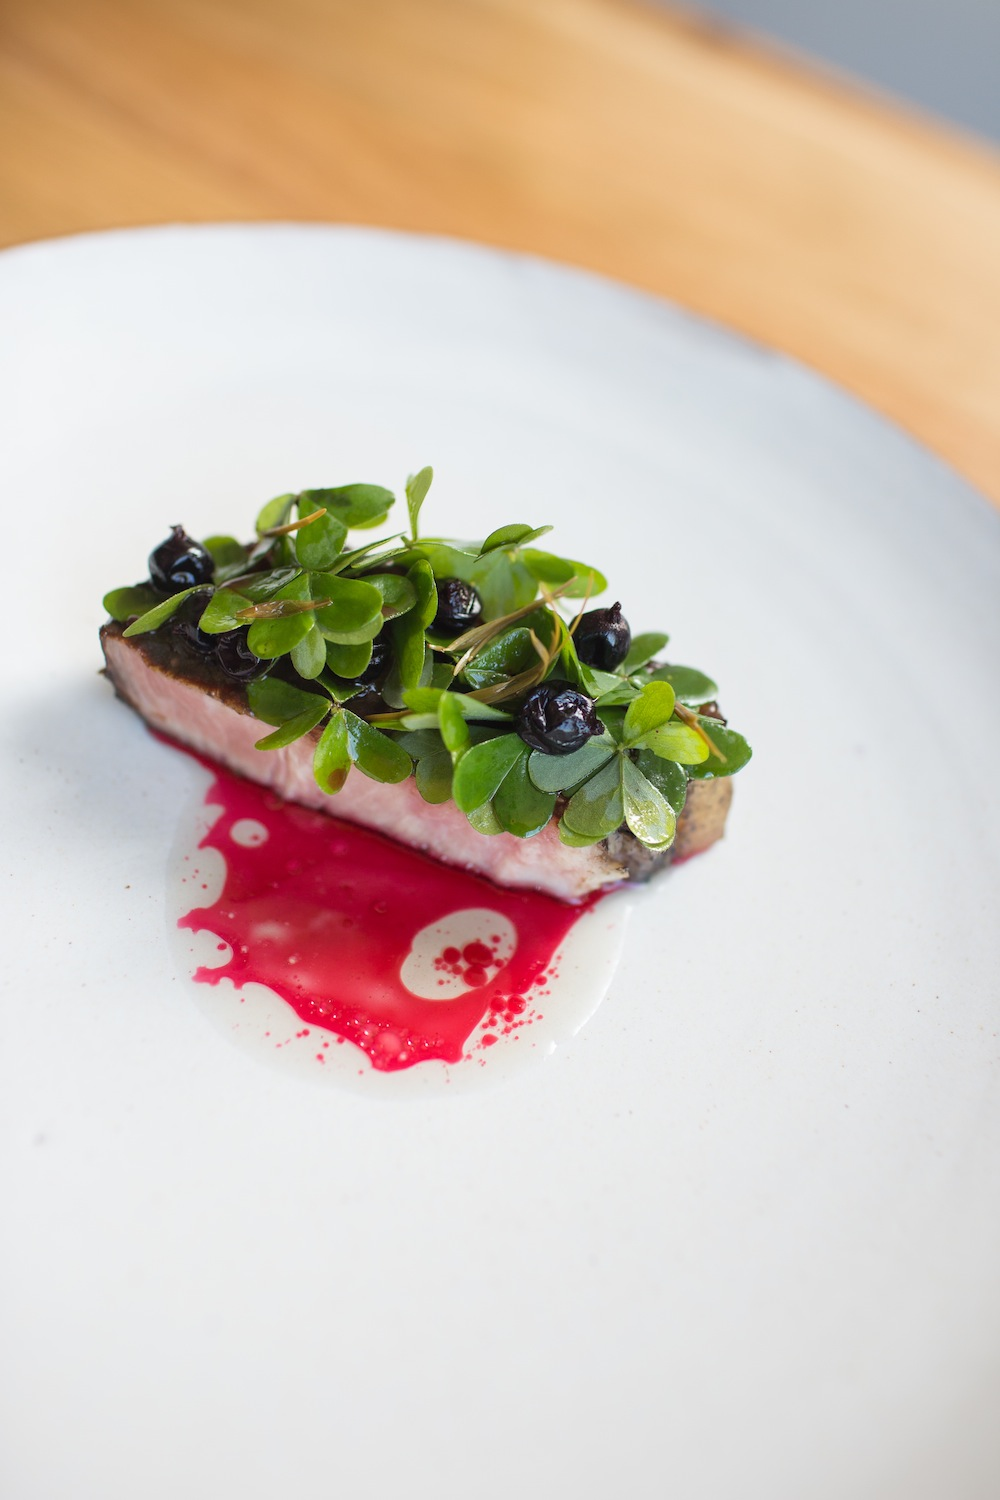 Heritage black pork, black garlic | Greta Kenyon